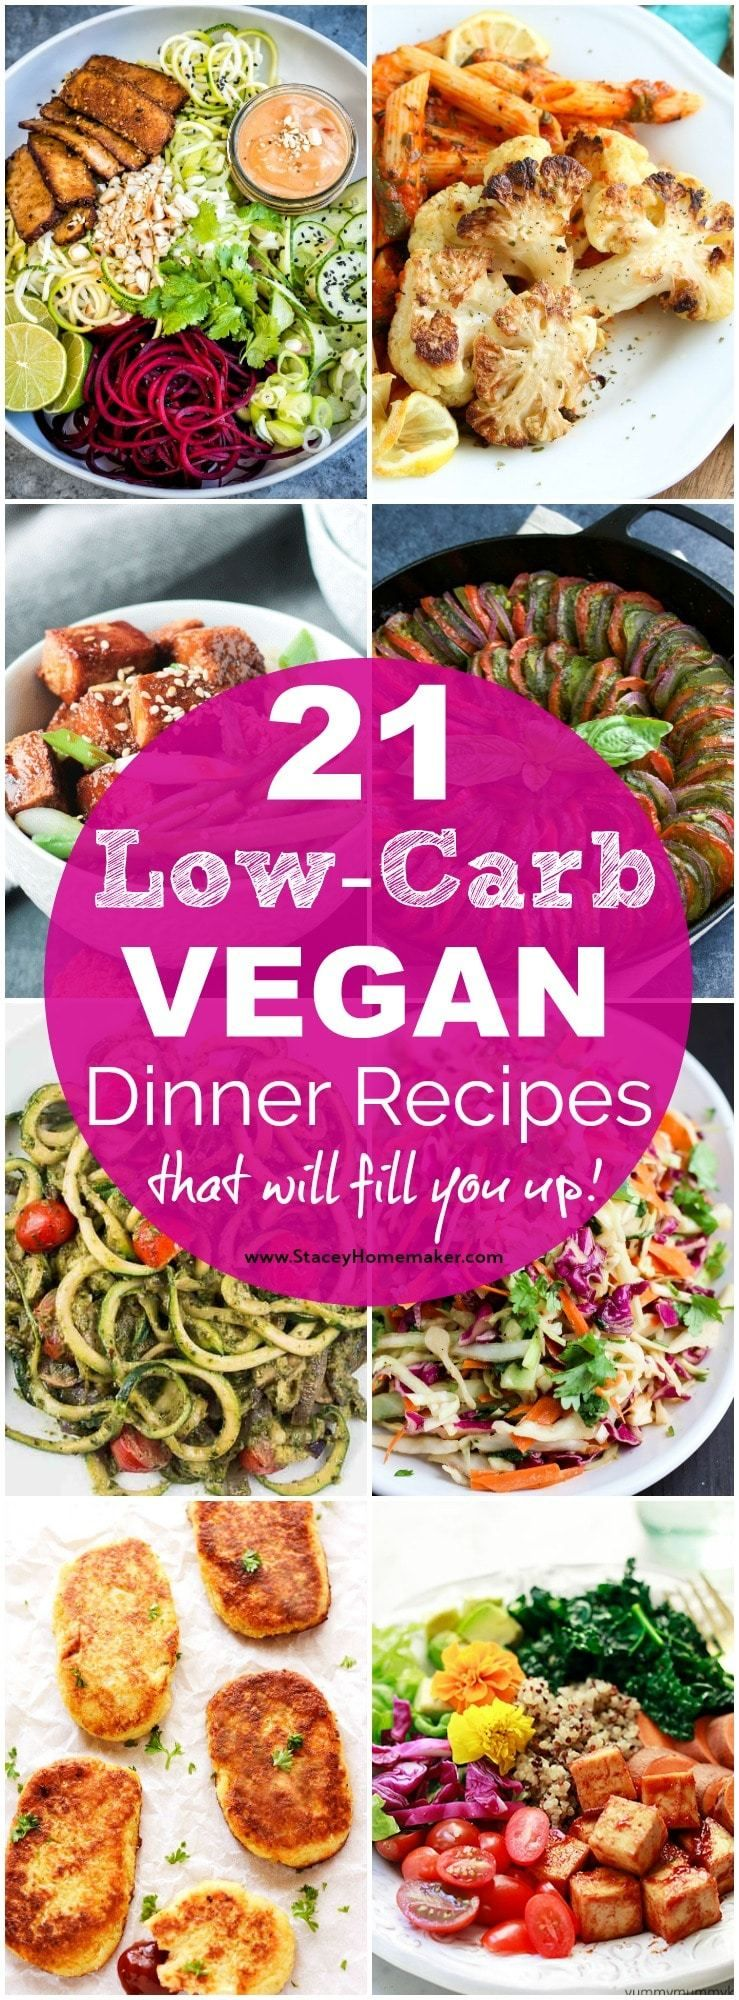 Low Carb Vegan Recipes Vegan Recipes Healthy Vegan Dinner Recipes Vegan Recipes Plant Based